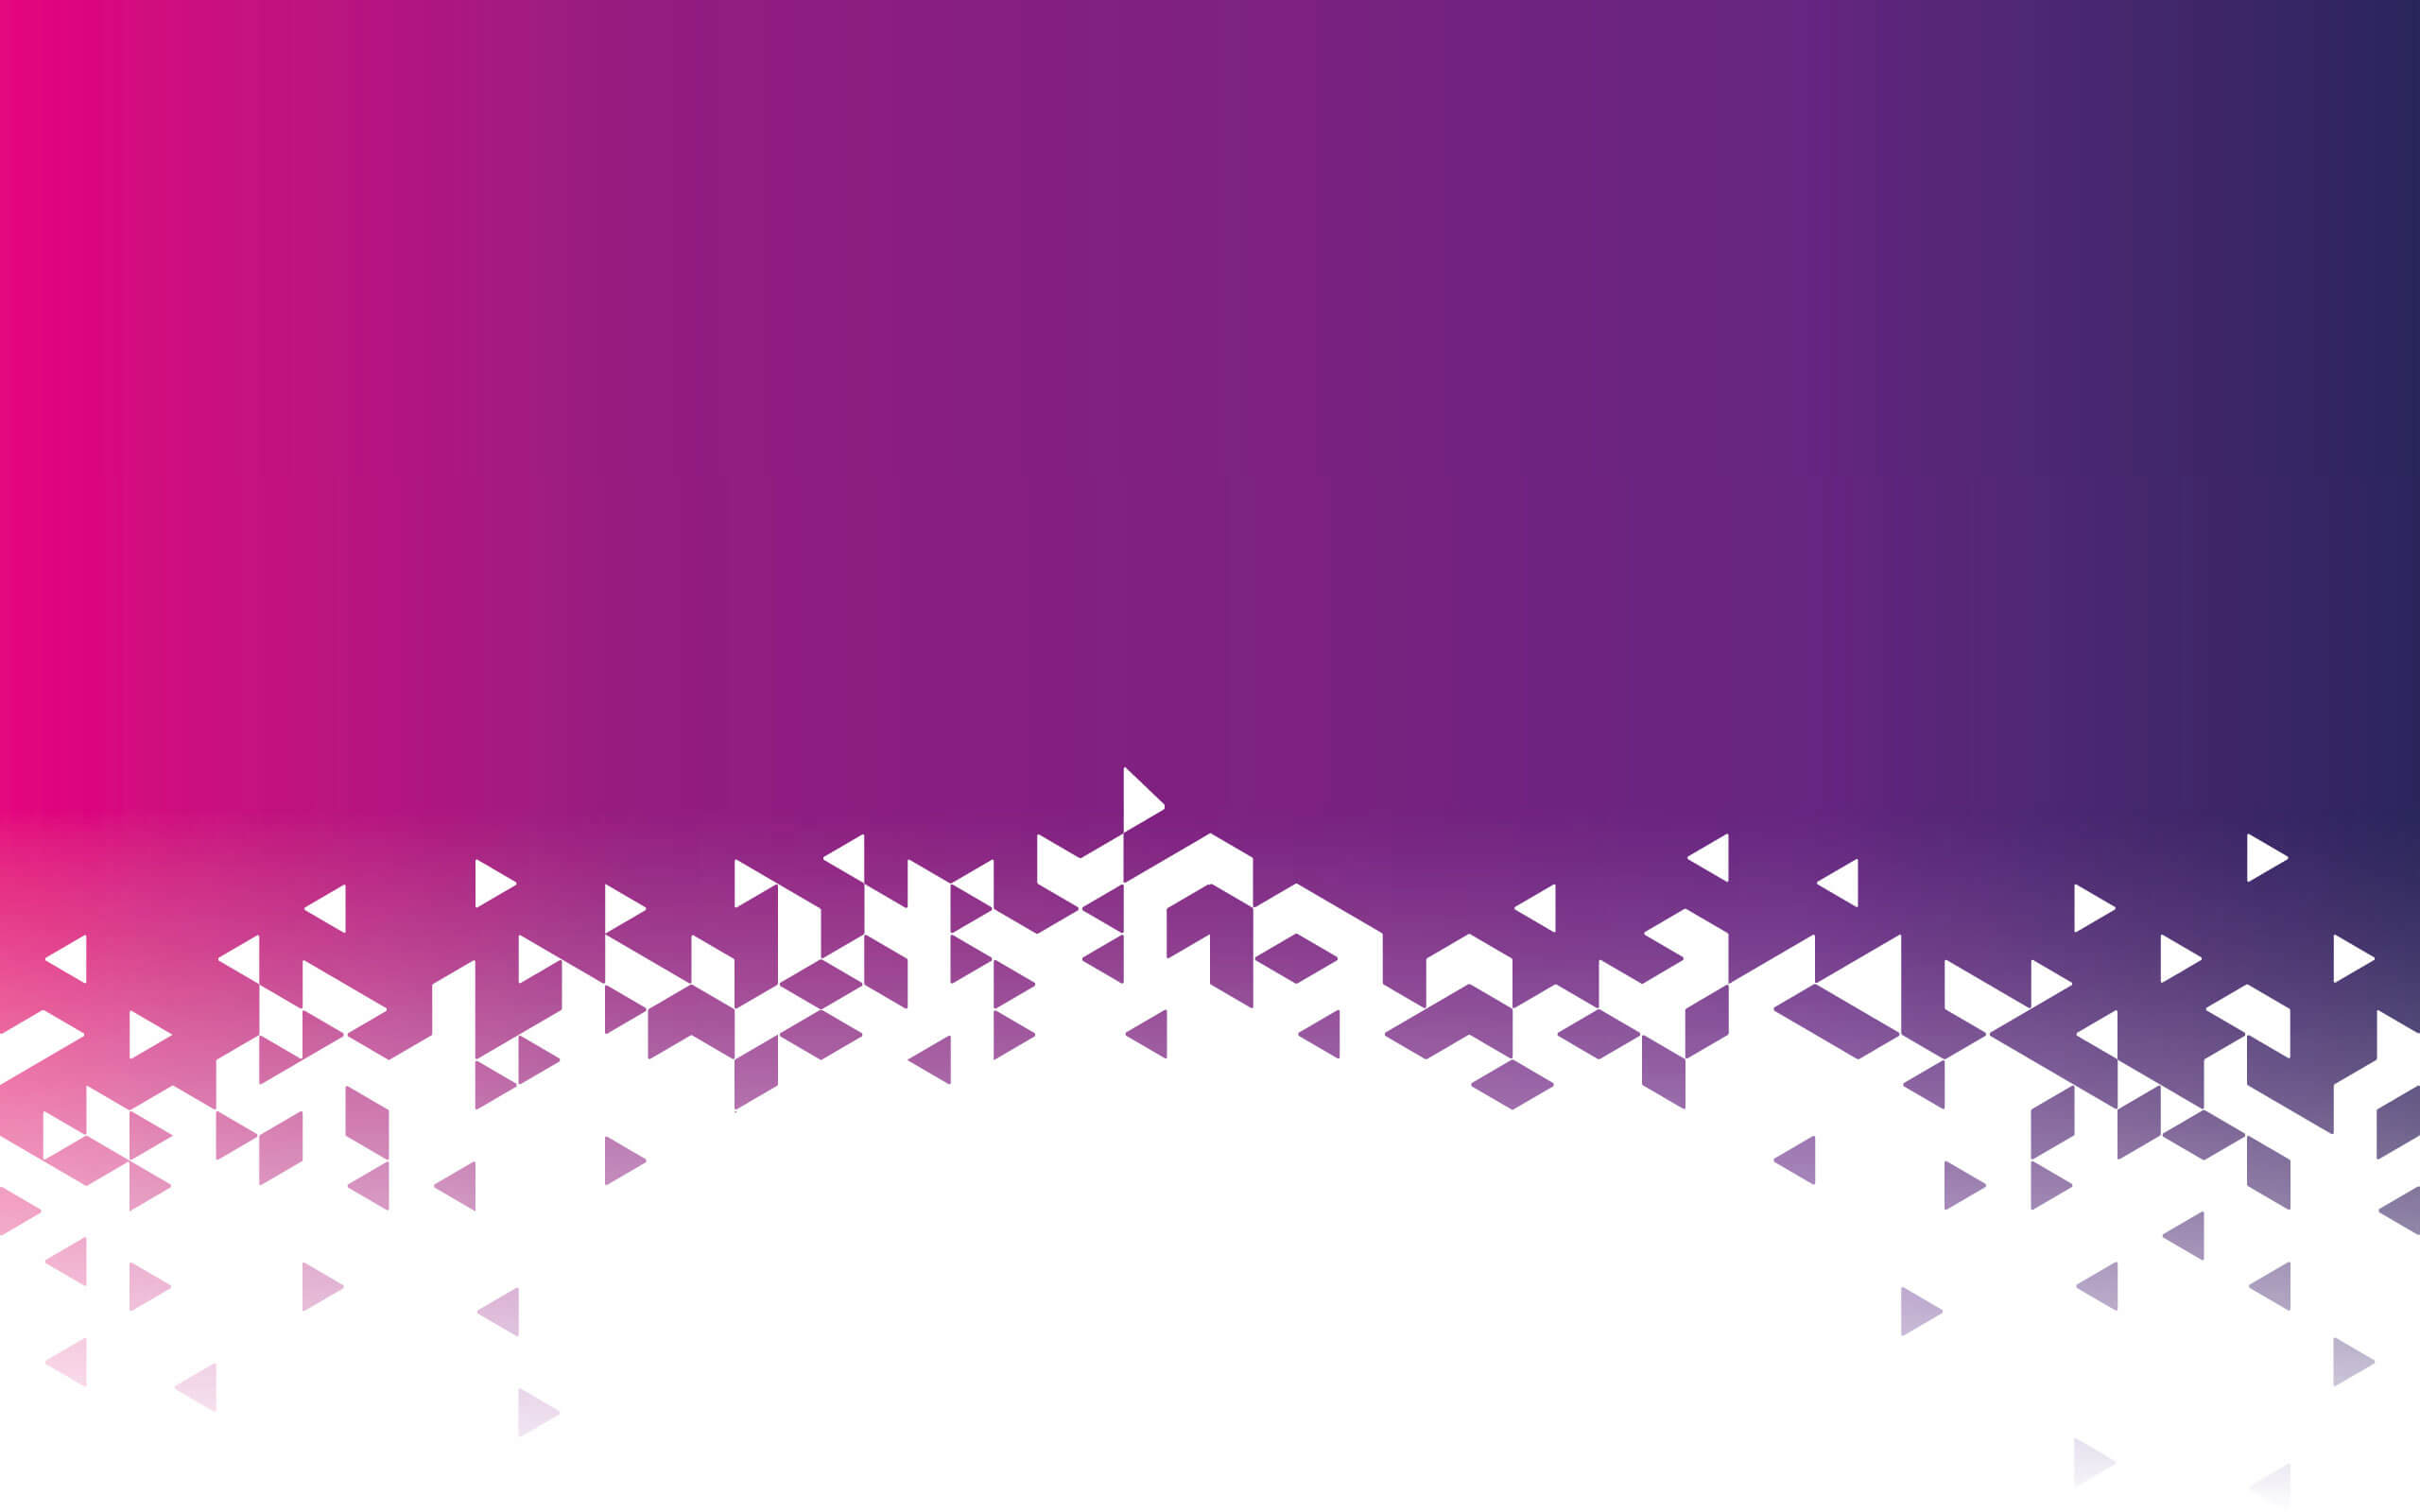 Triangle effect white pink and purple background